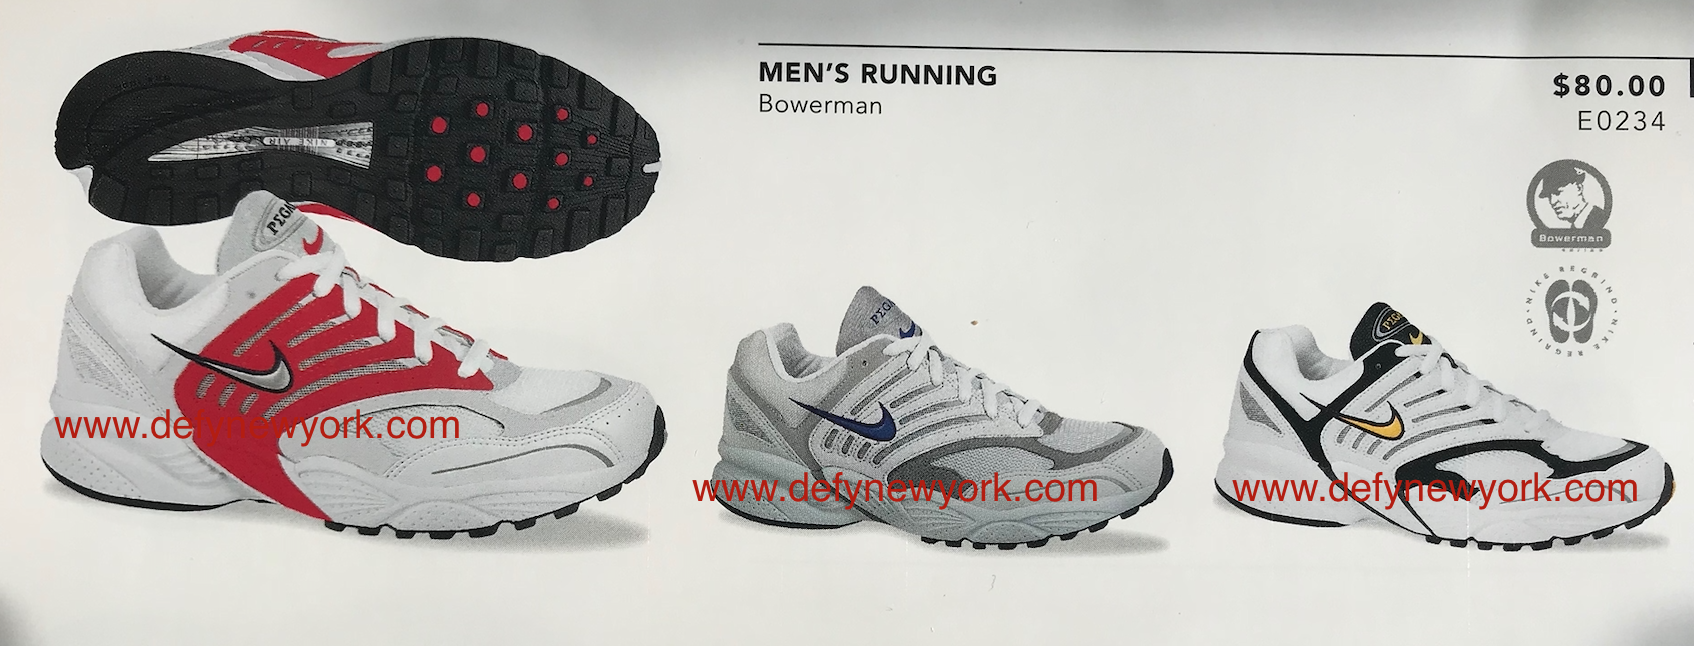 c377748b11e9b3 ... 1000 outsole with forefoot Waffle Fill outsole and center of pressure  heel. Size range was 6-15 and were part of they were part of the Bowerman  series.